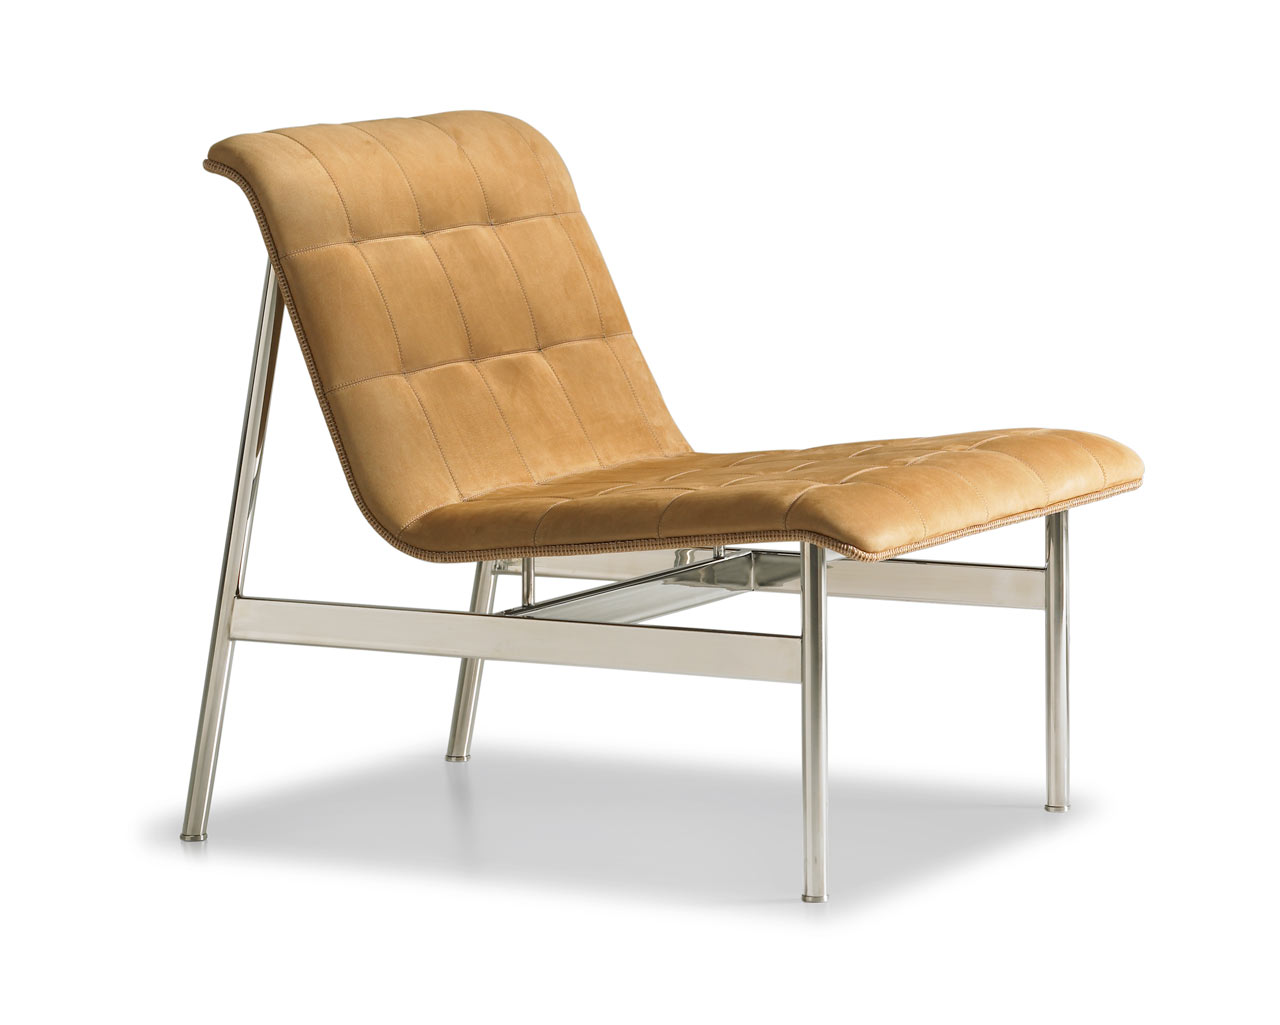 Image of: Mid Century Lounge Chair Image